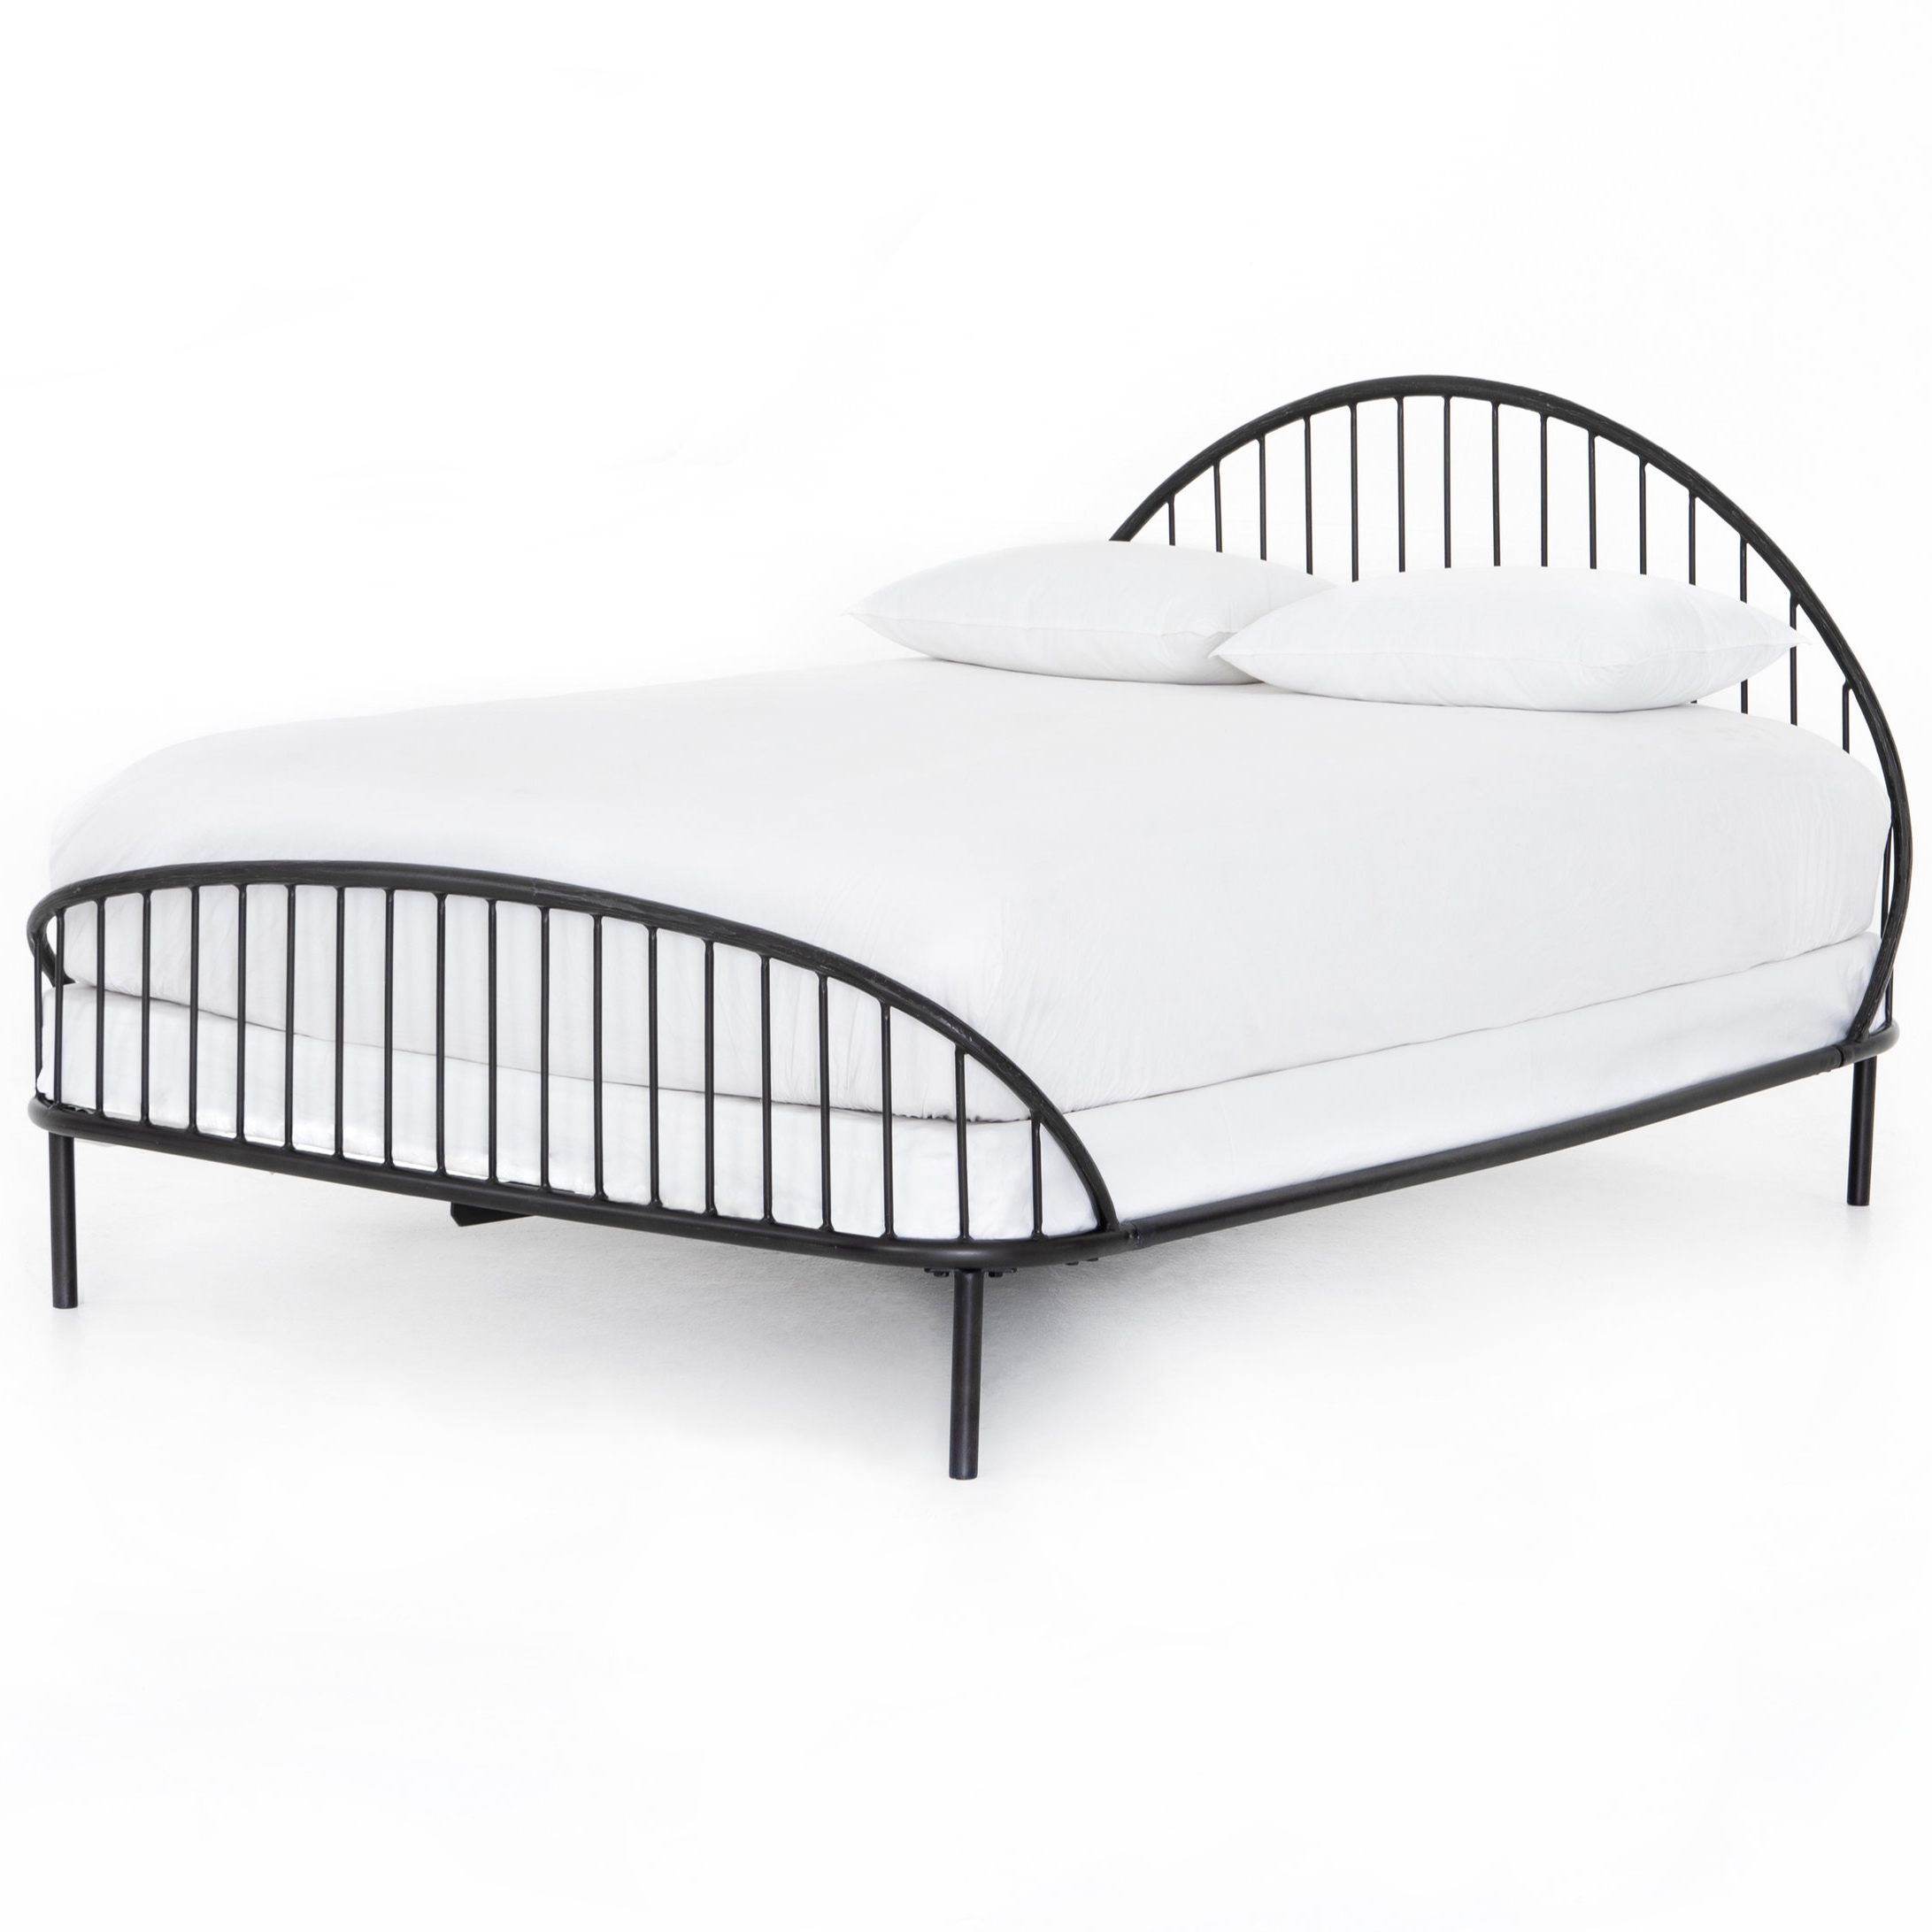 Waverly Iron Bed    |  Soft and feminine with a found feel. Hand-wrought iron is shaped by hand into an intriguing arc, with open railing for a light look.